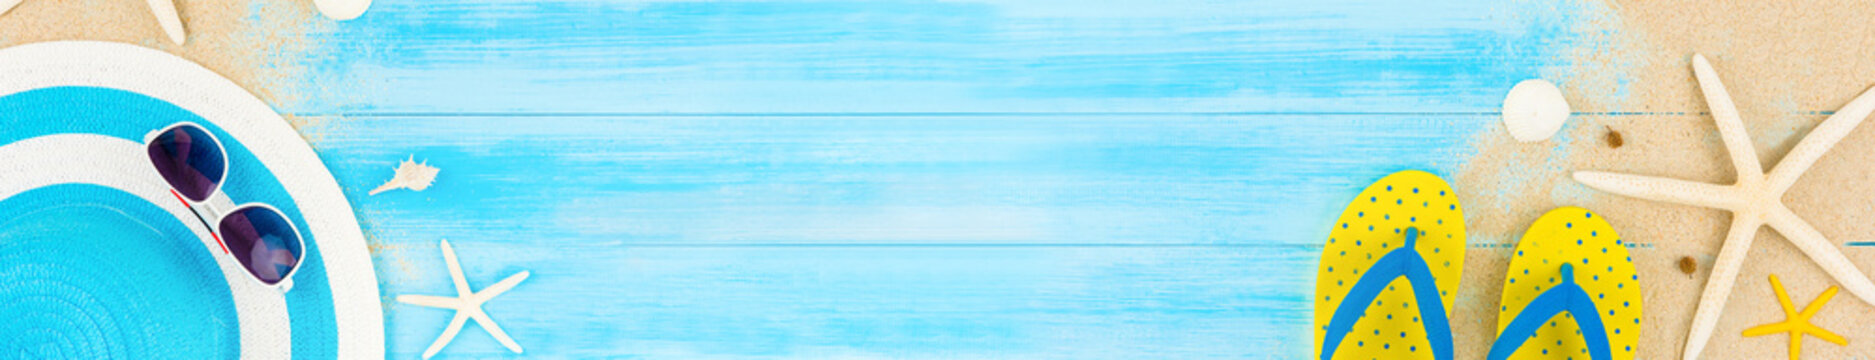 Colorful summer holiday beach web banner background